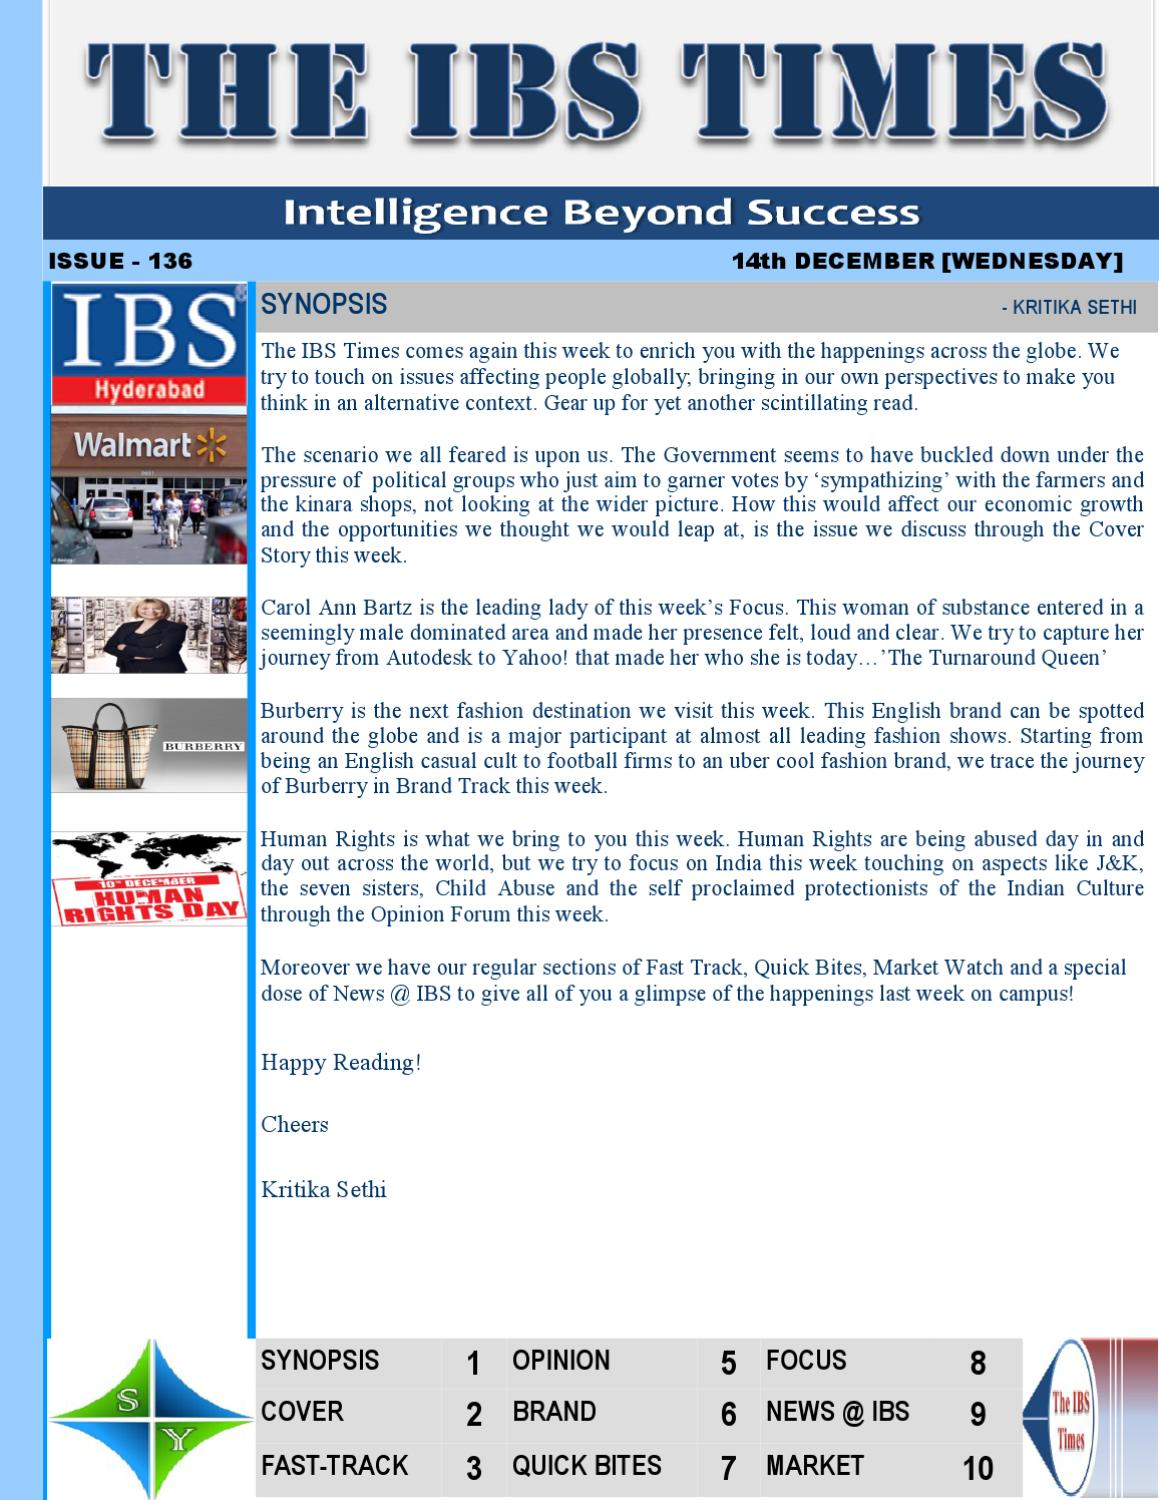 The IBS TIMES 136th Issue